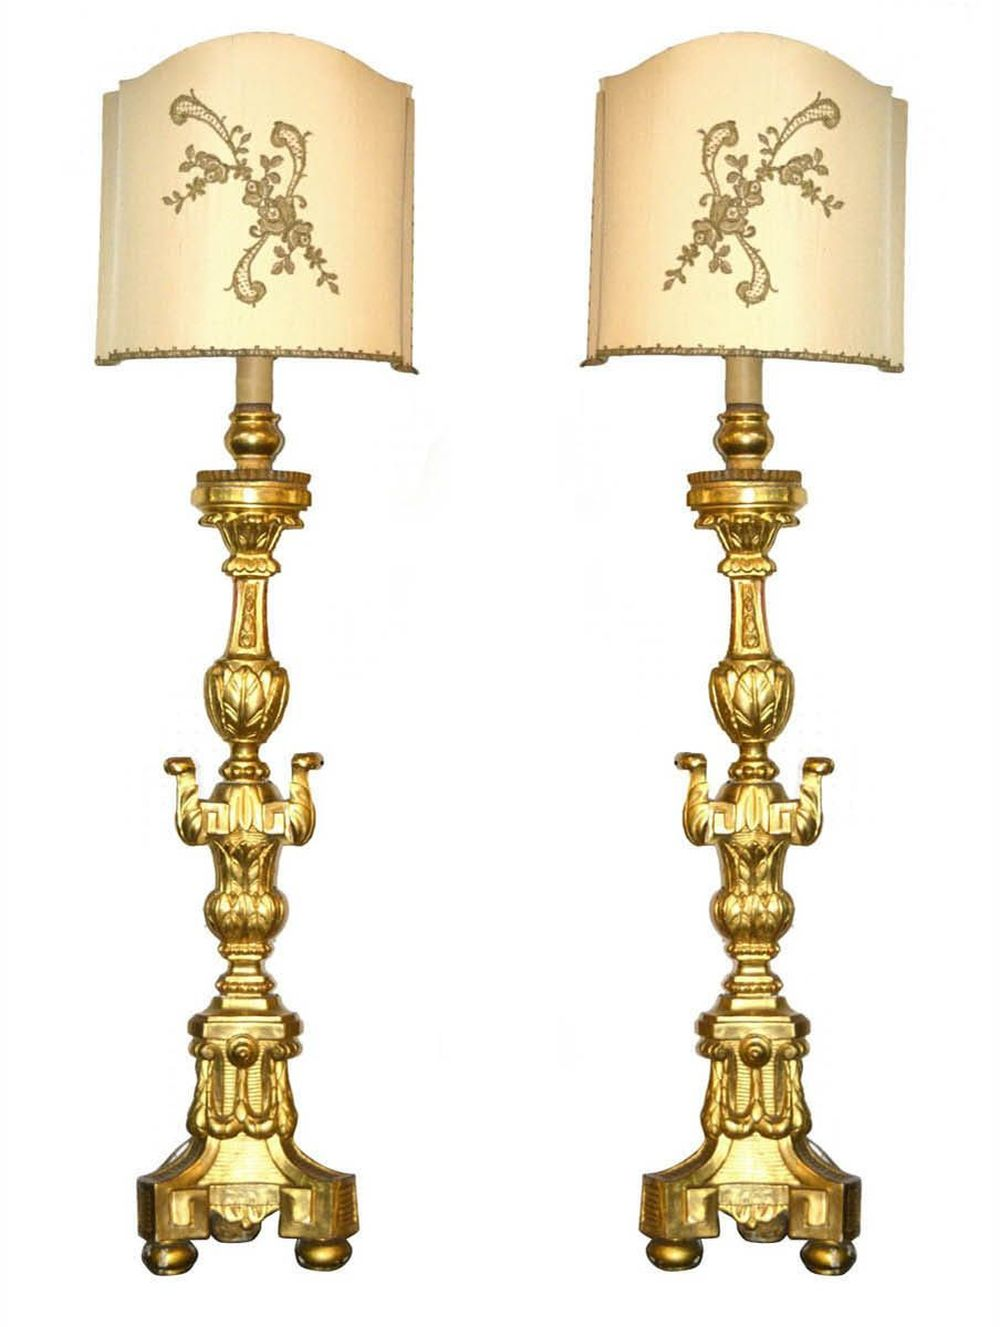 Pair of antique giltwood table lamps